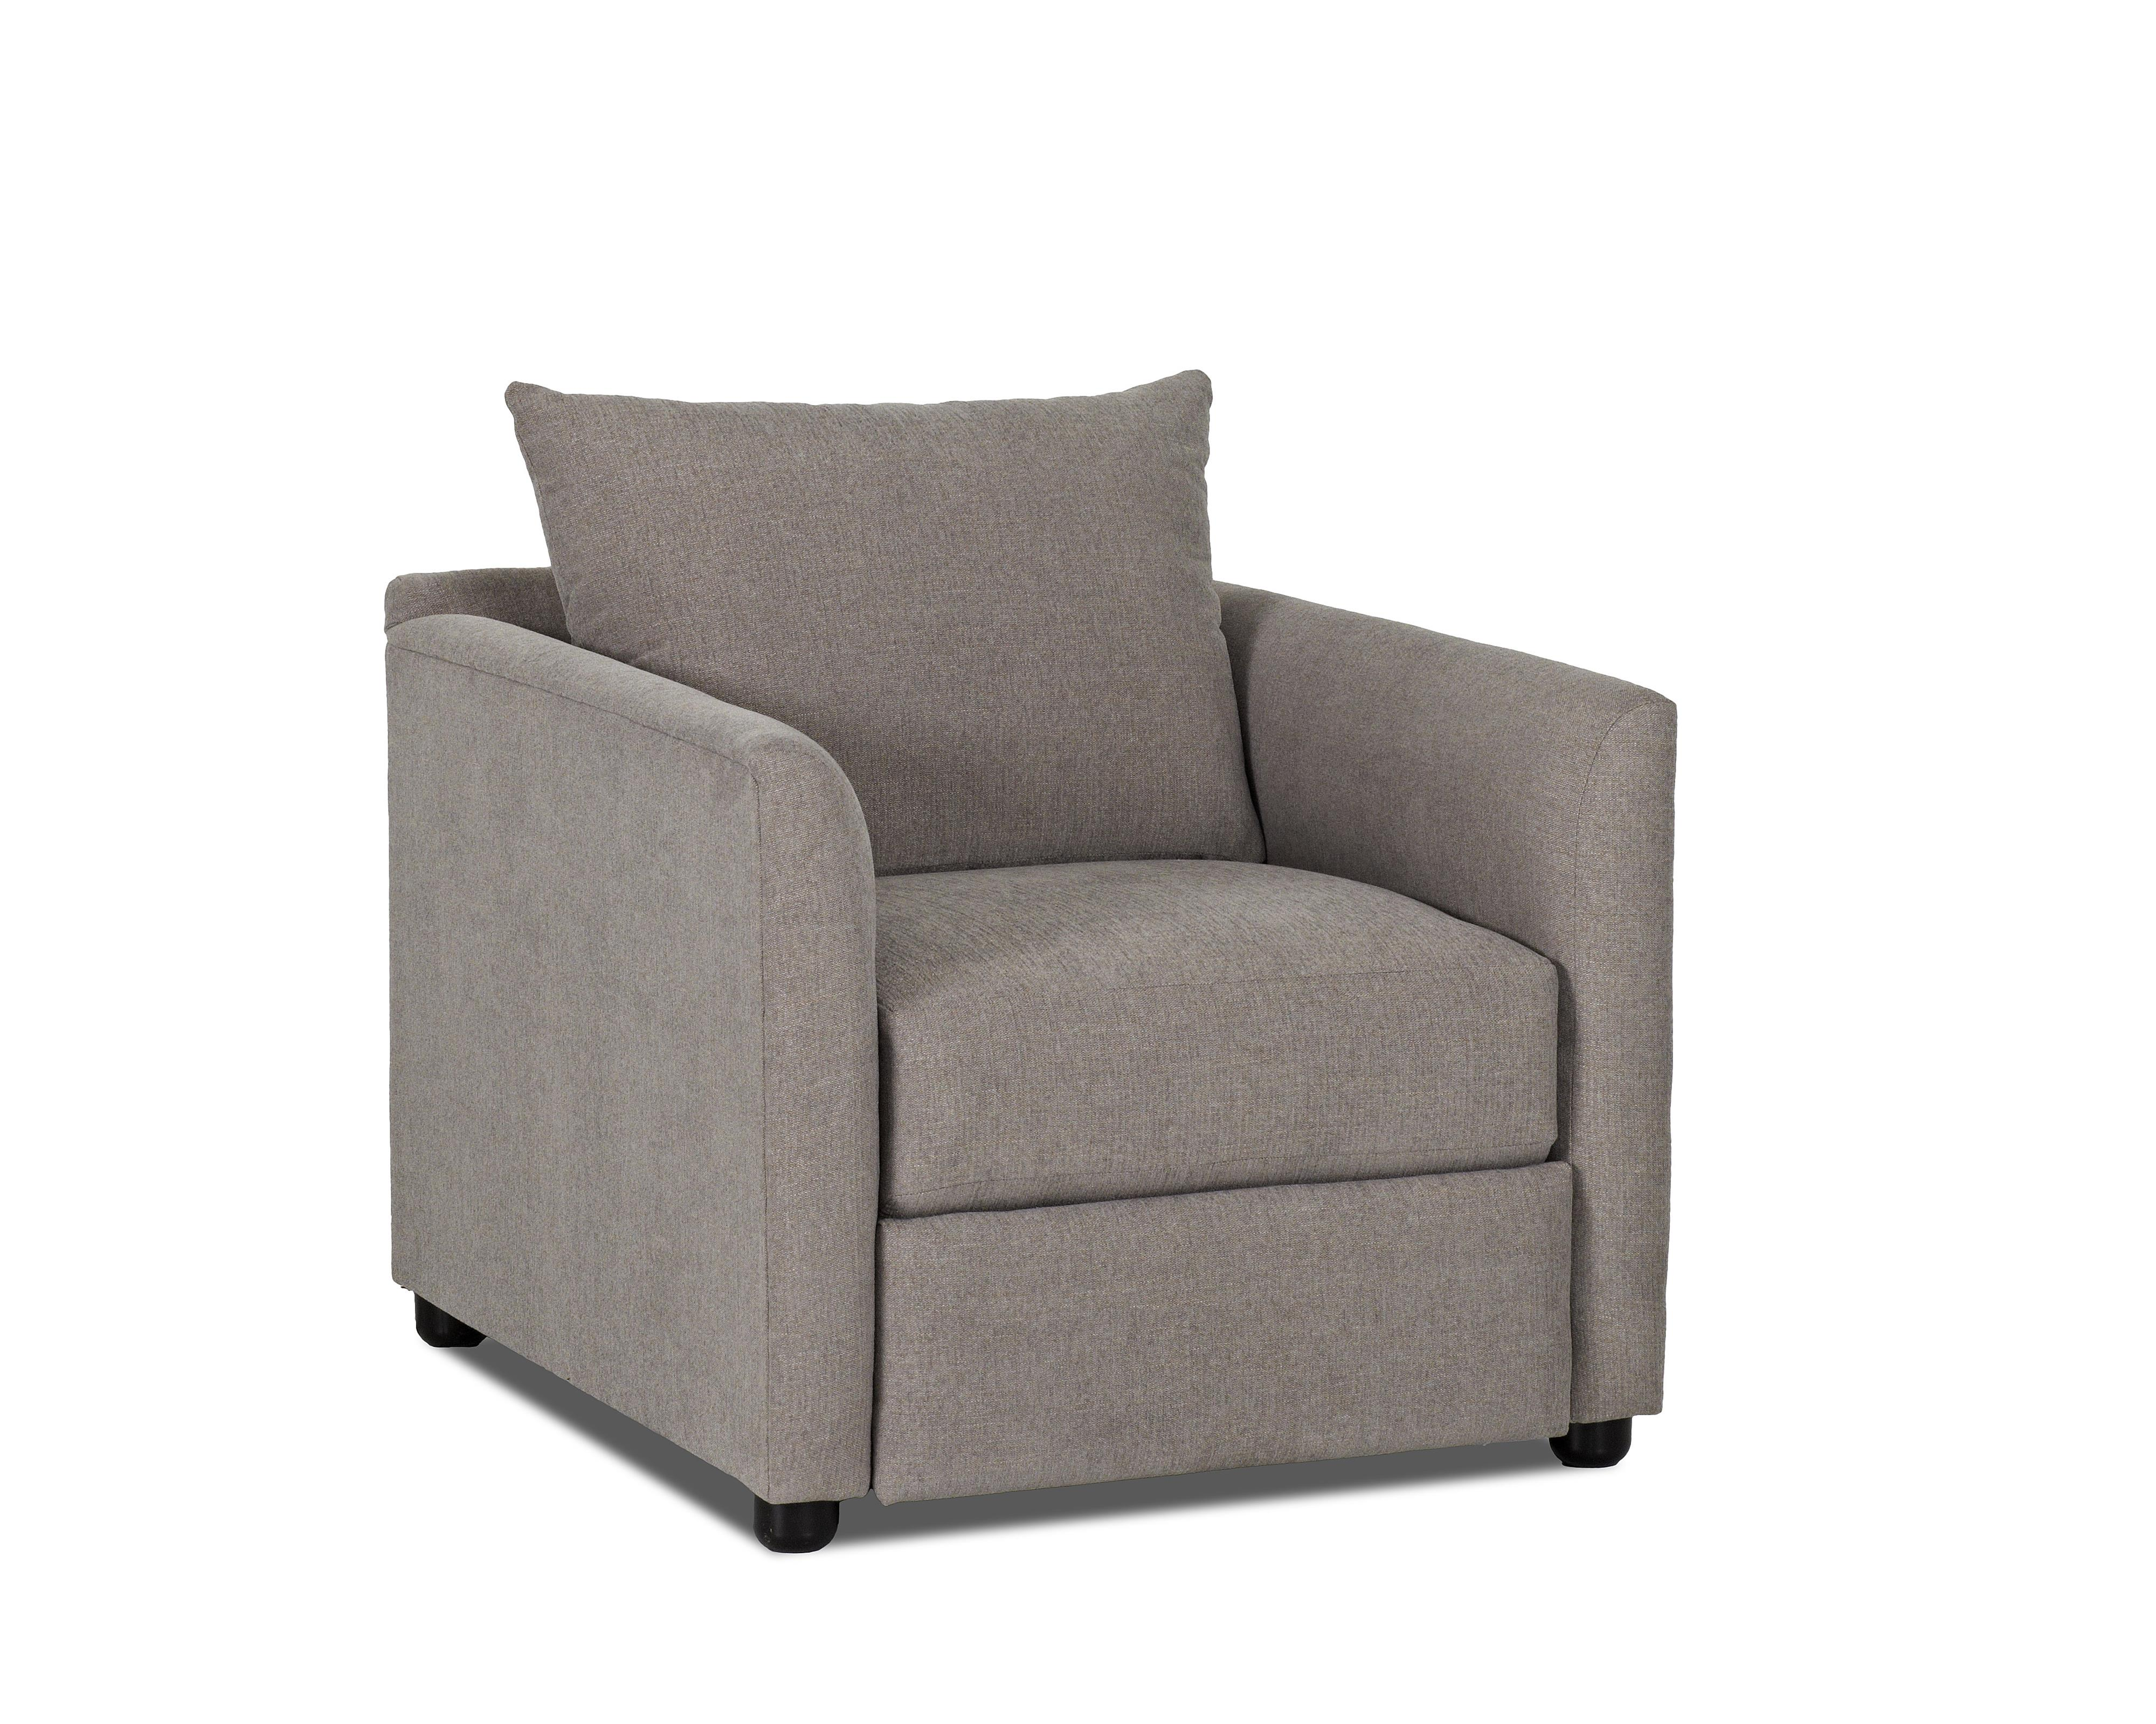 Atlanta Power Reclining Chair by Klaussner at Northeast Factory Direct